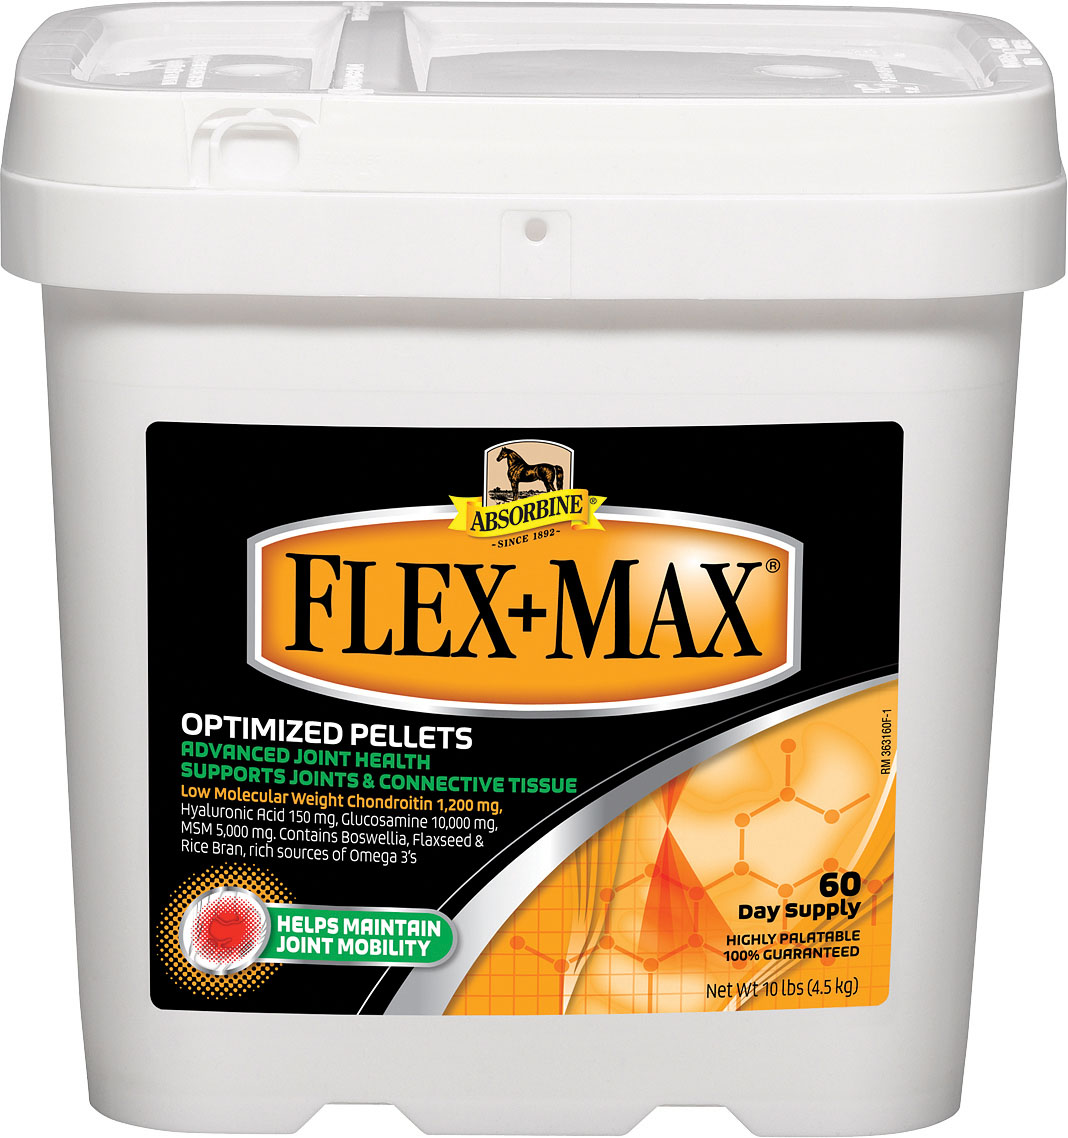 ABSORBINE FLEX+MAX OPTIMIZED JOINT HEALTH PELLETS